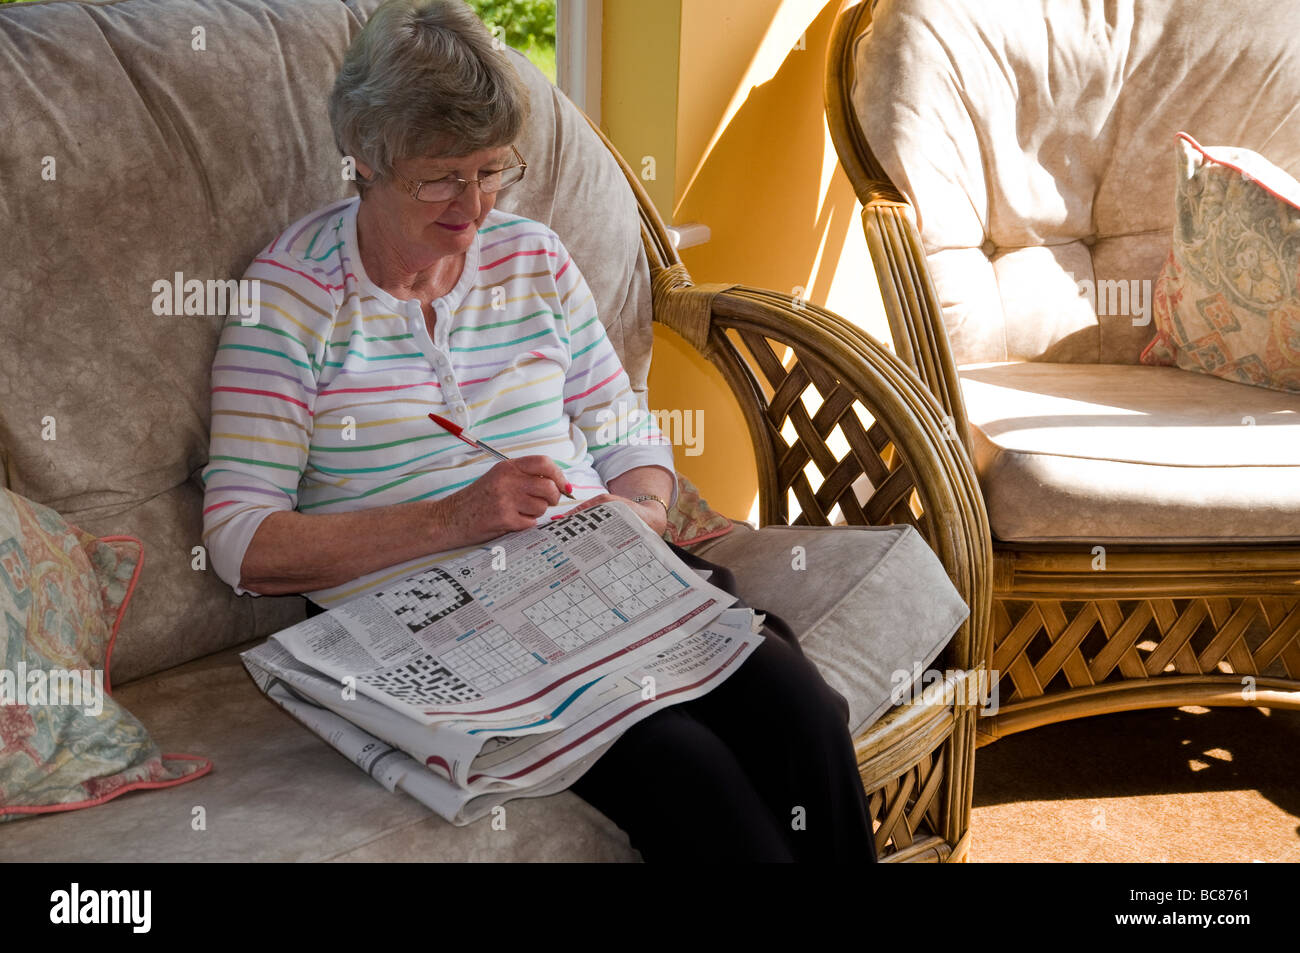 A woman solving puzzles in a daily paper. - Stock Image